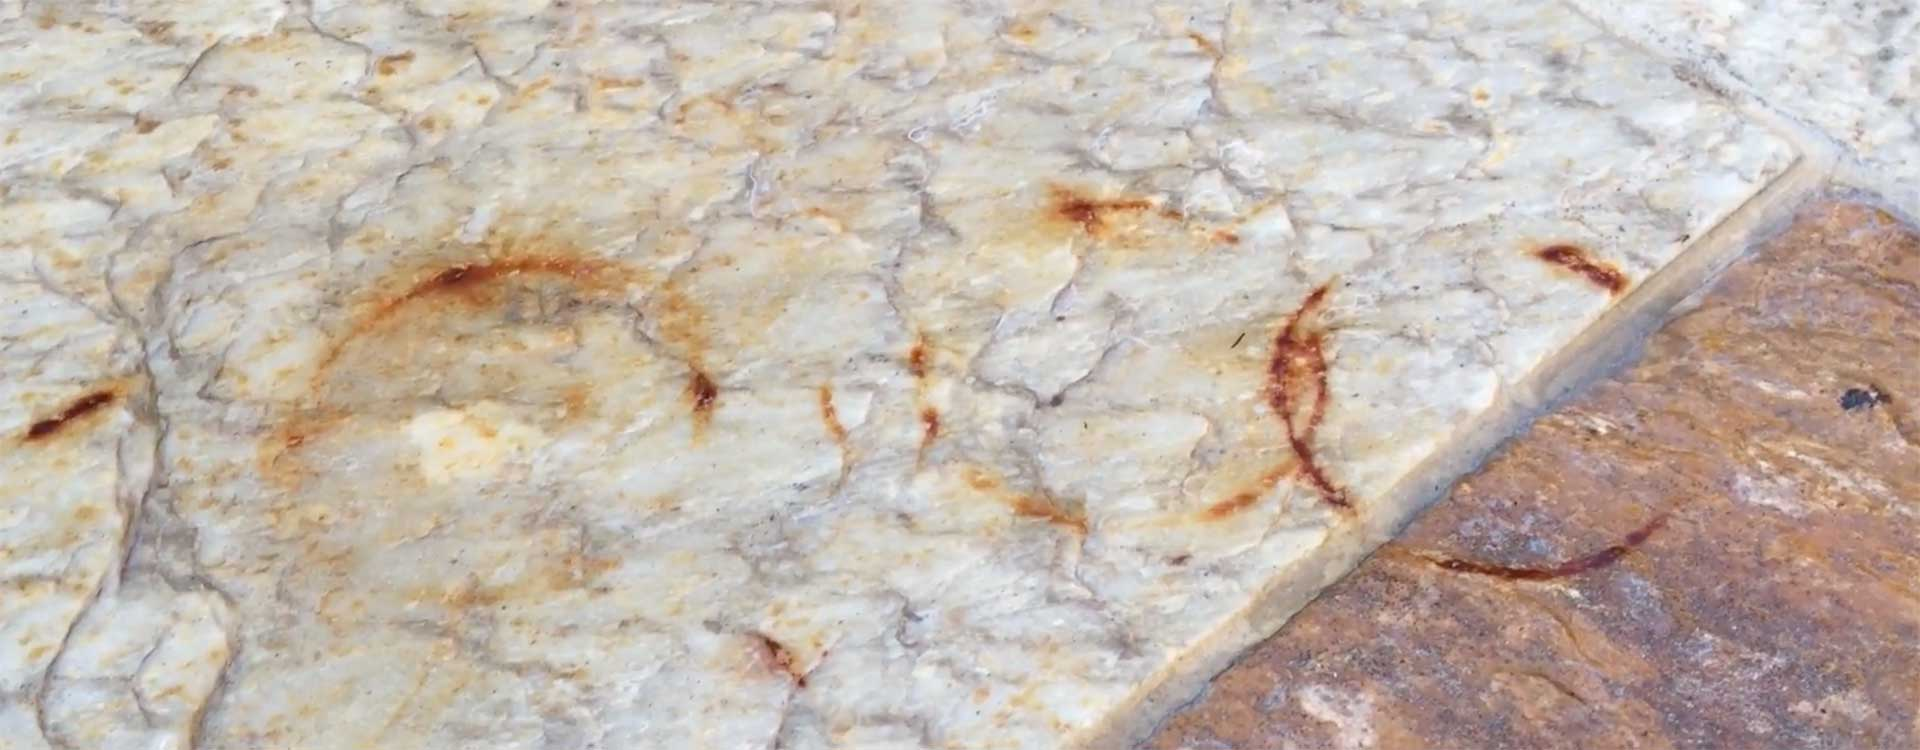 How to Remove Rust Stains from a Stone Patio